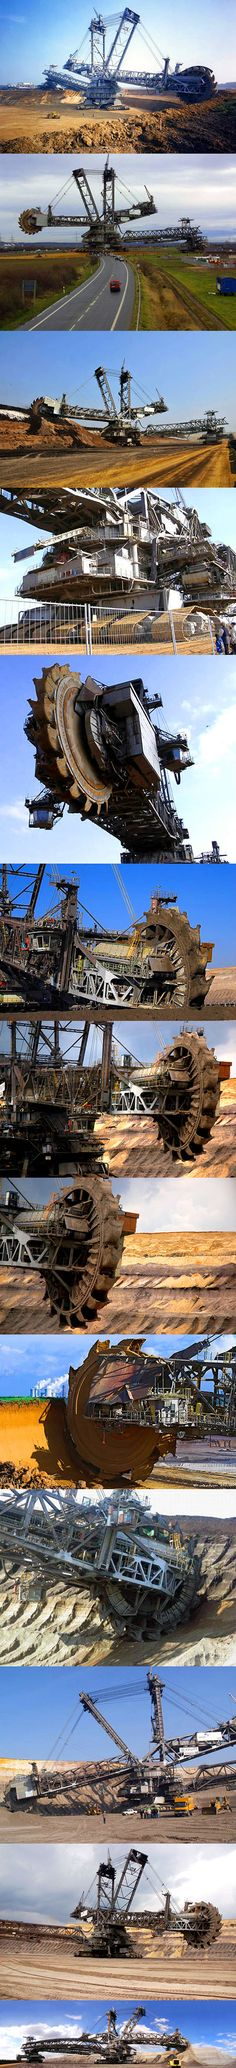 The 100 million Bagger 288 (Excavator 288), built by the German company Krupp (now ThyssenKrupp) for the energy and mining firm Rheinbraun, is a bucket-wheel excavator or mobile strip mining machine. When its construction was completed in 1978, Bagger 288 superseded NASA's Crawler-Transporter, used to carry the Space Shuttle and Apollo Saturn V launch vehicle, as the largest land vehicle in the world.